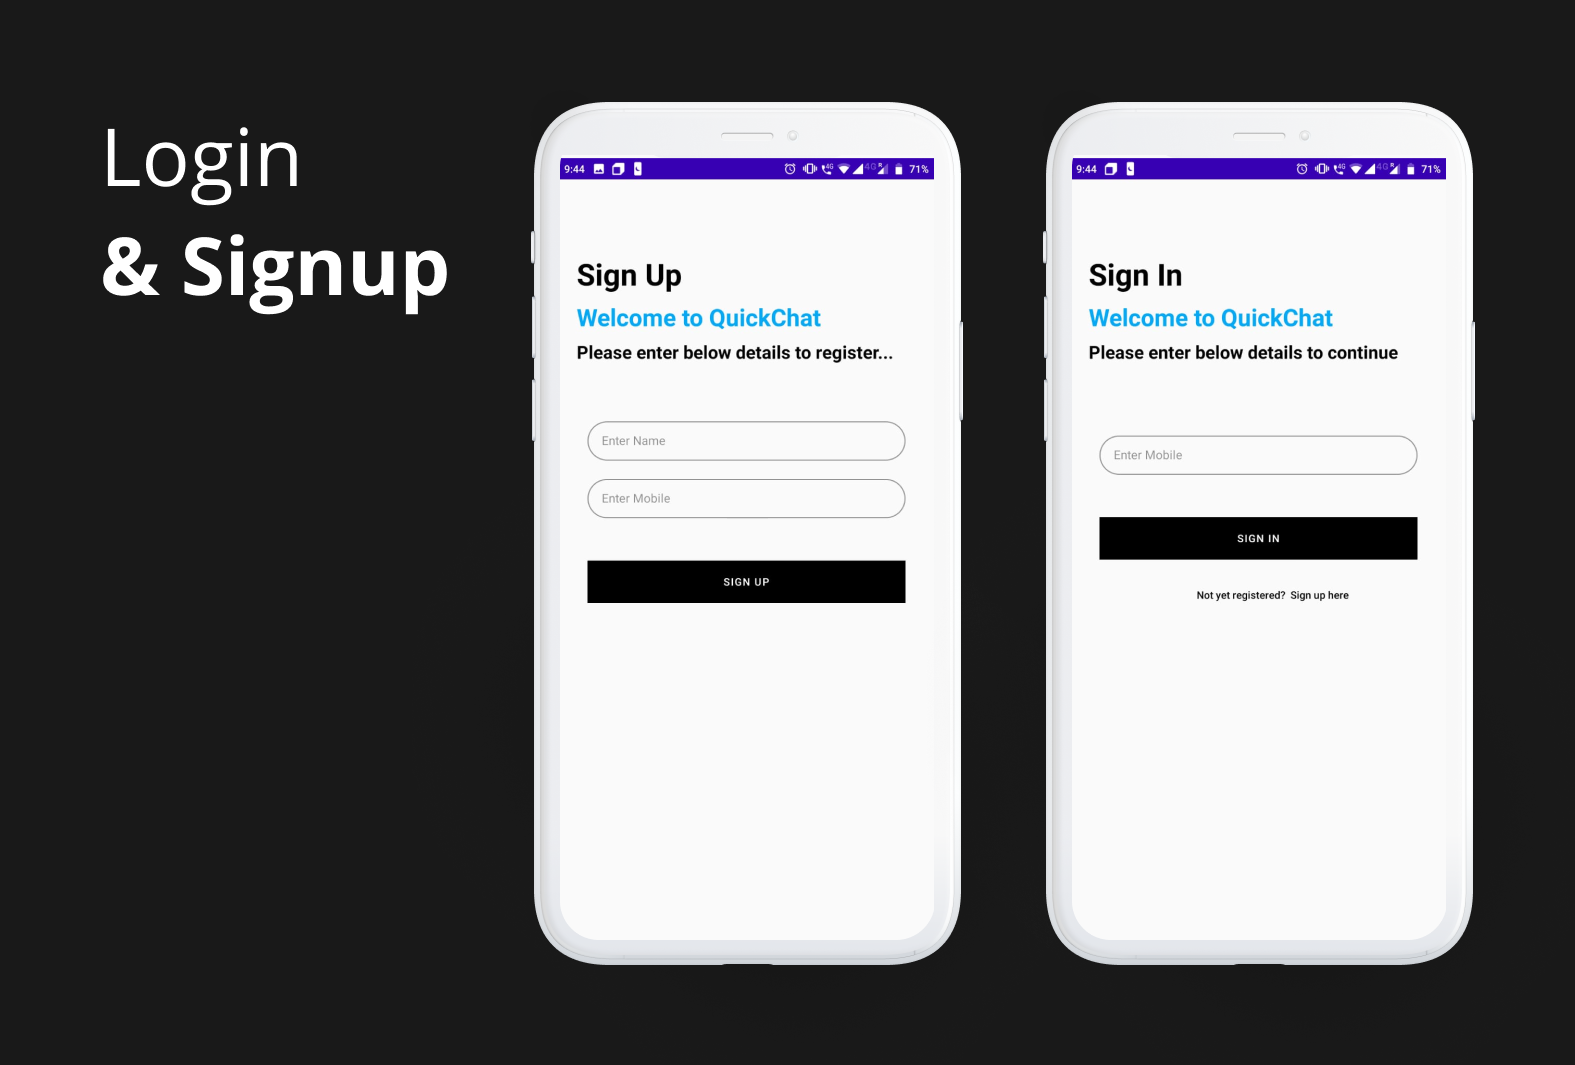 Here's how the Sign Up and Login Screen looks like